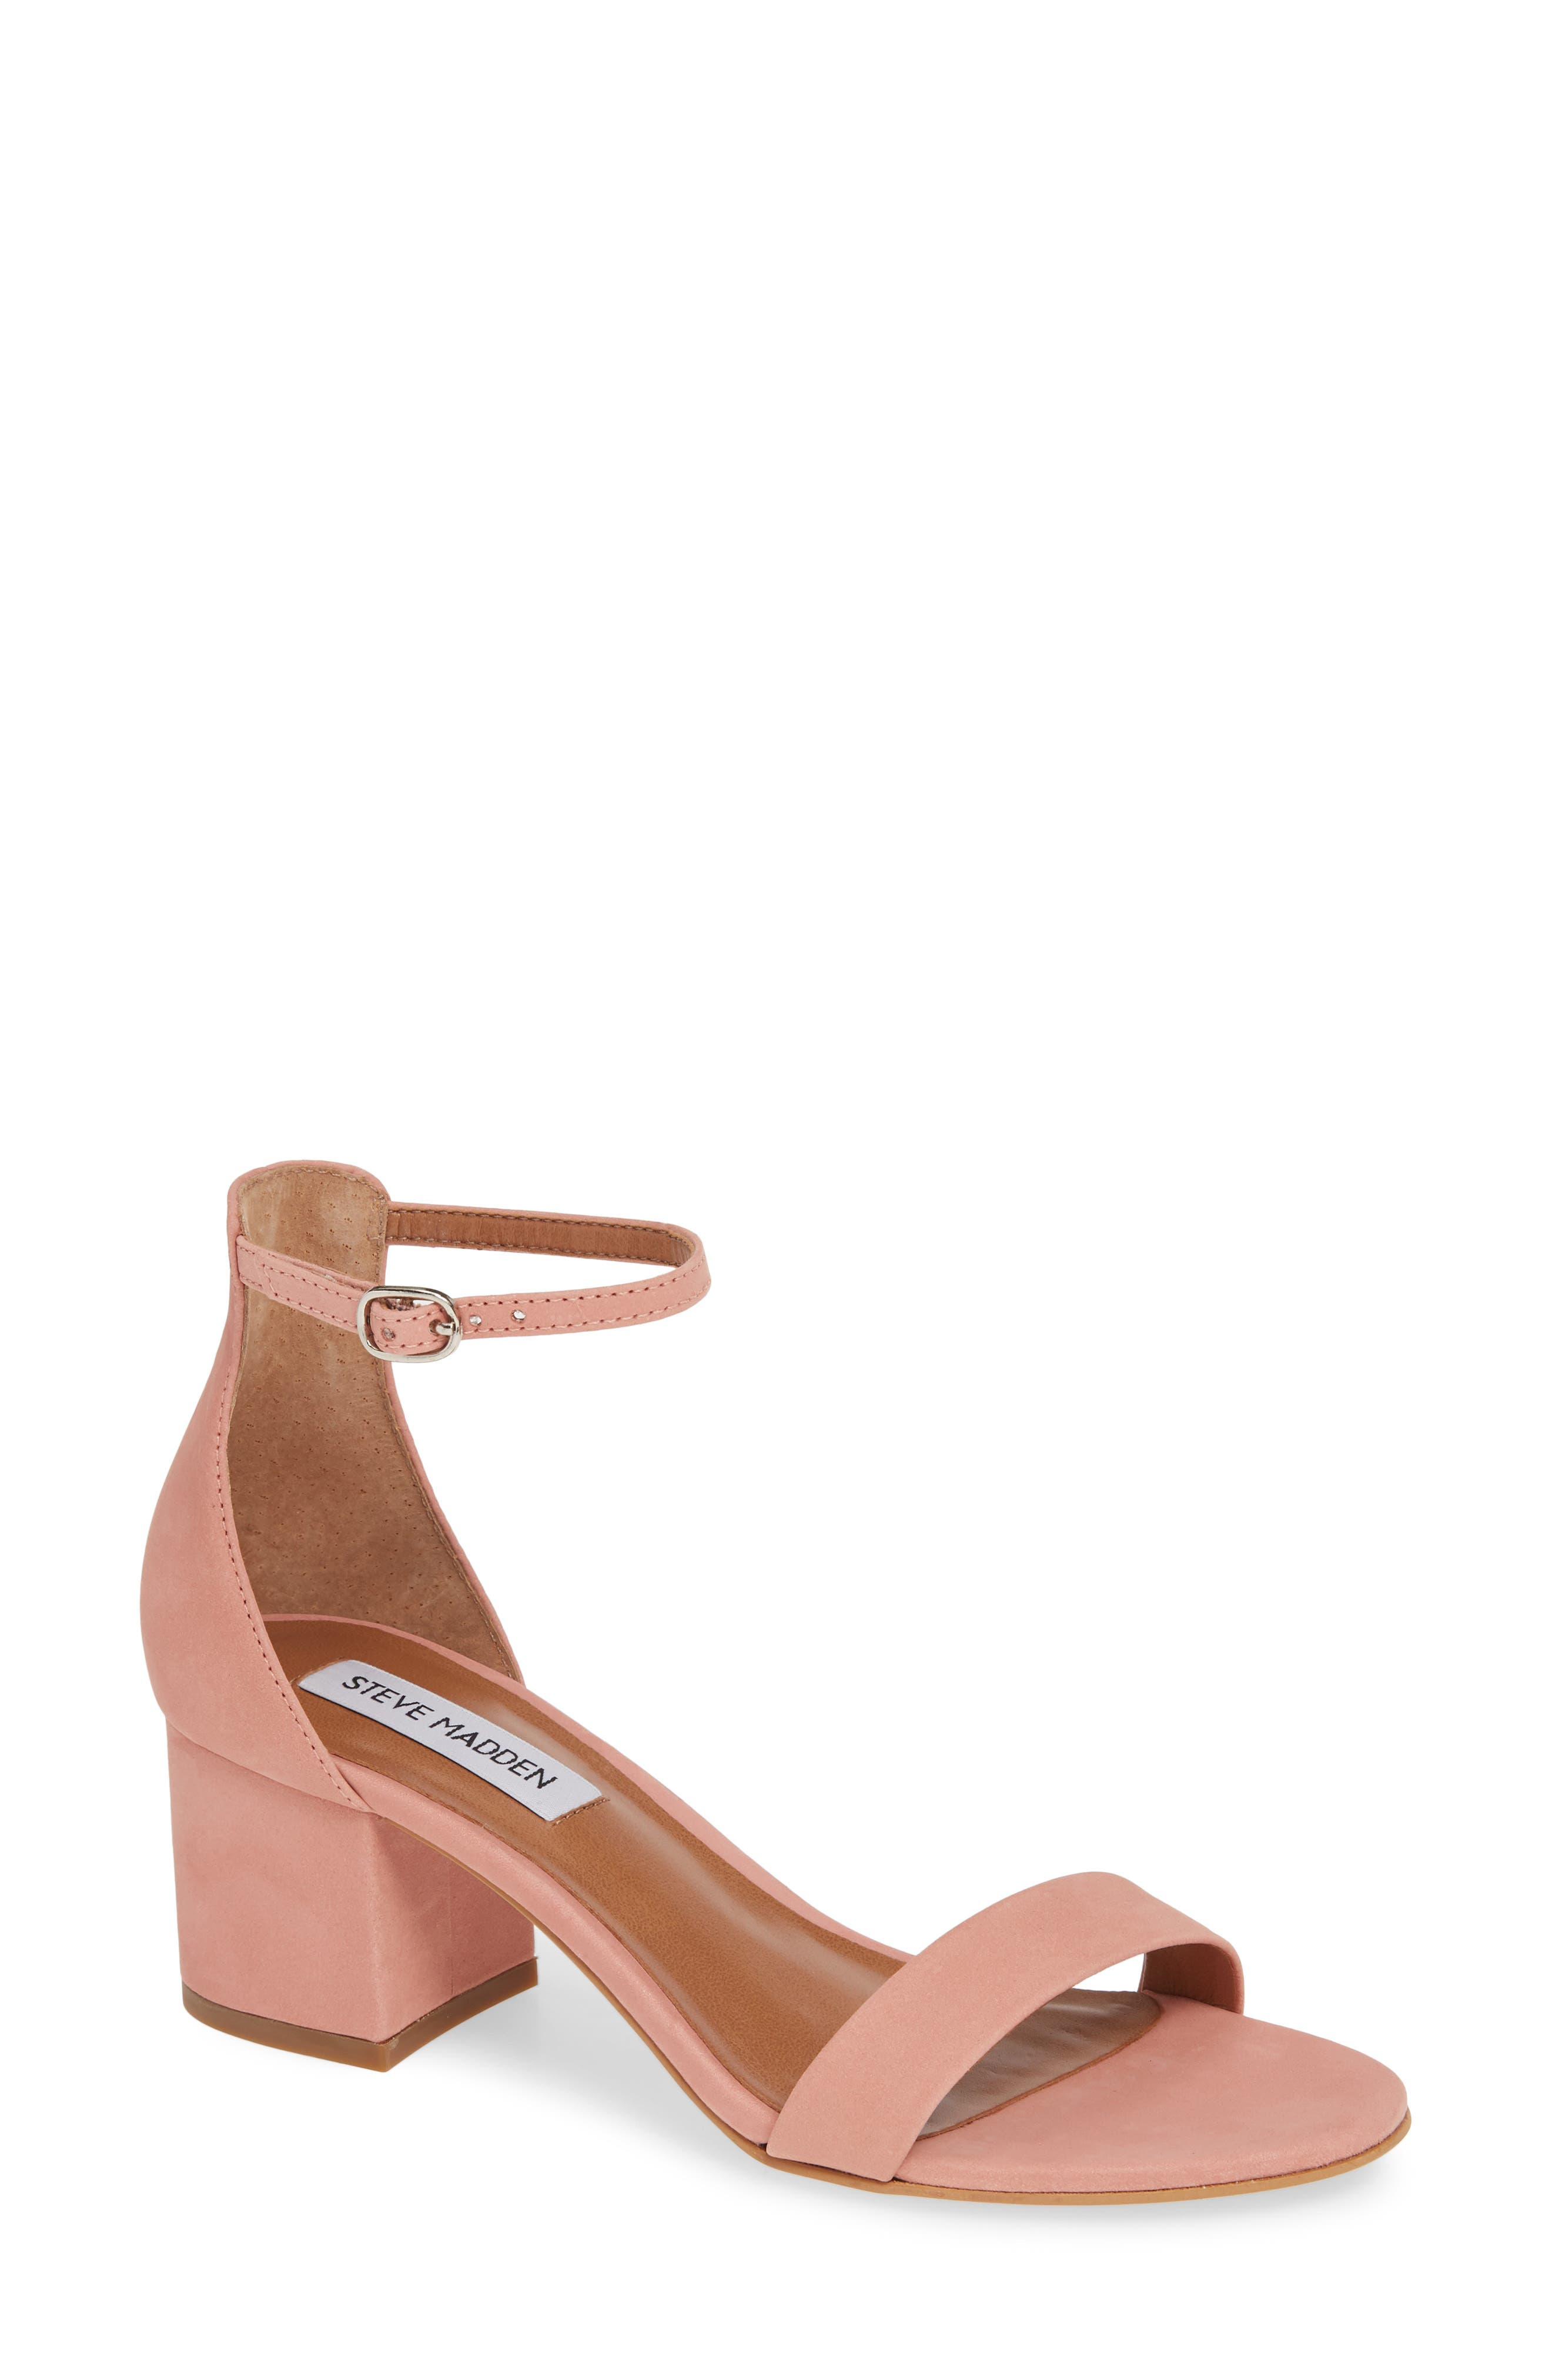 ,                             Irenee Ankle Strap Sandal,                             Main thumbnail 102, color,                             655